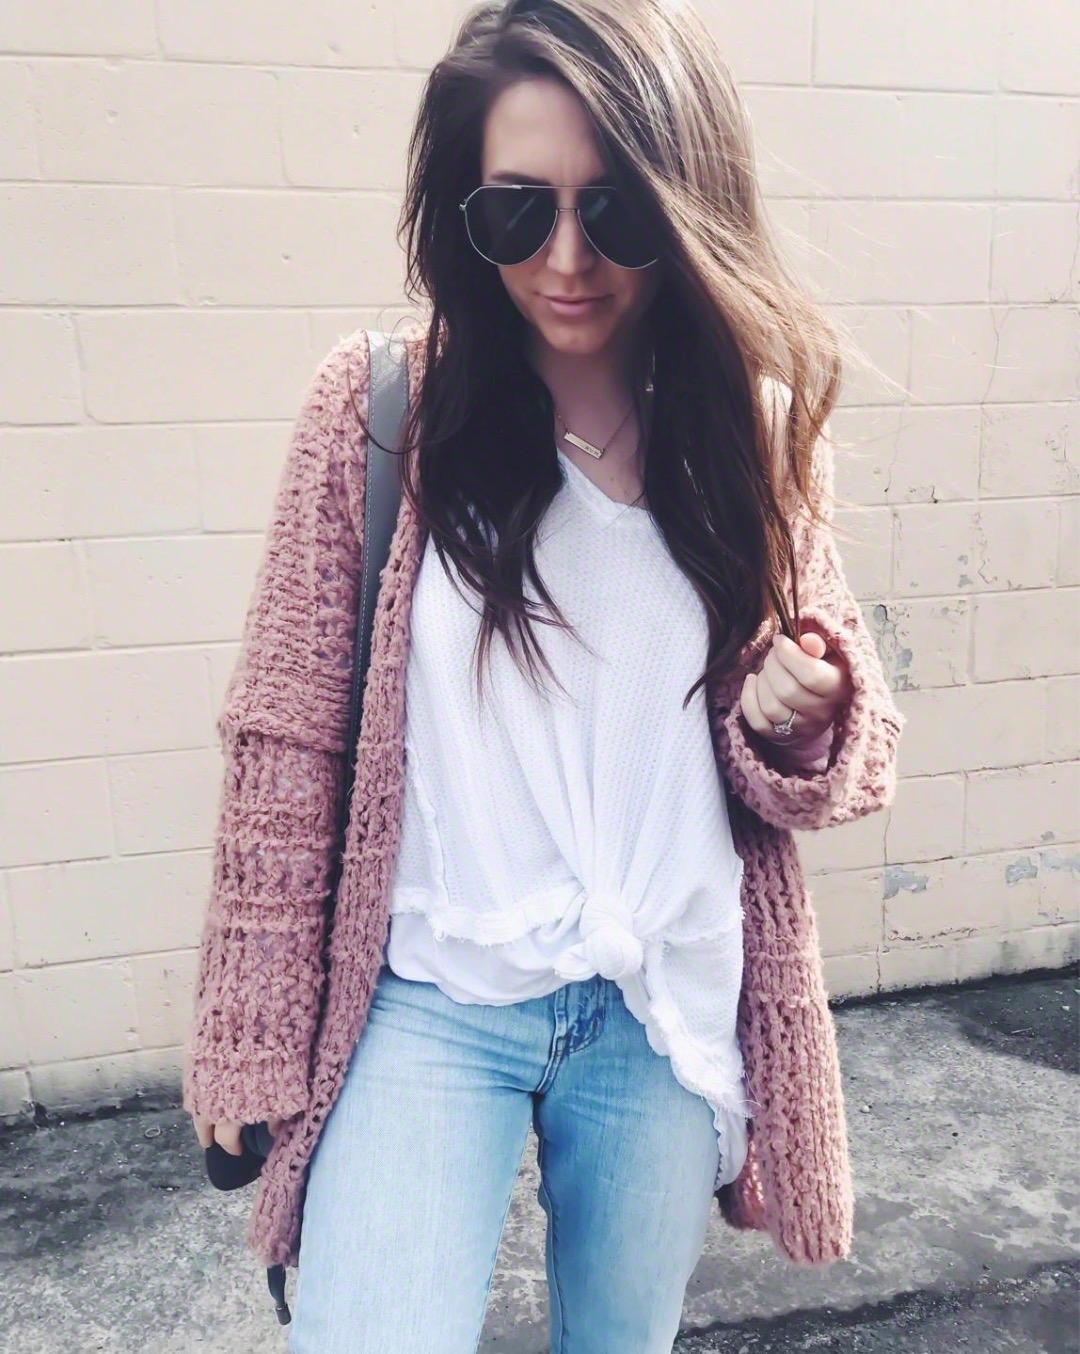 Instagram Round Up + Current Sales | Pine Barren Beauty | outfit of the day, outfit details, spring outfit, free people thermal + cardigan, madewell denim